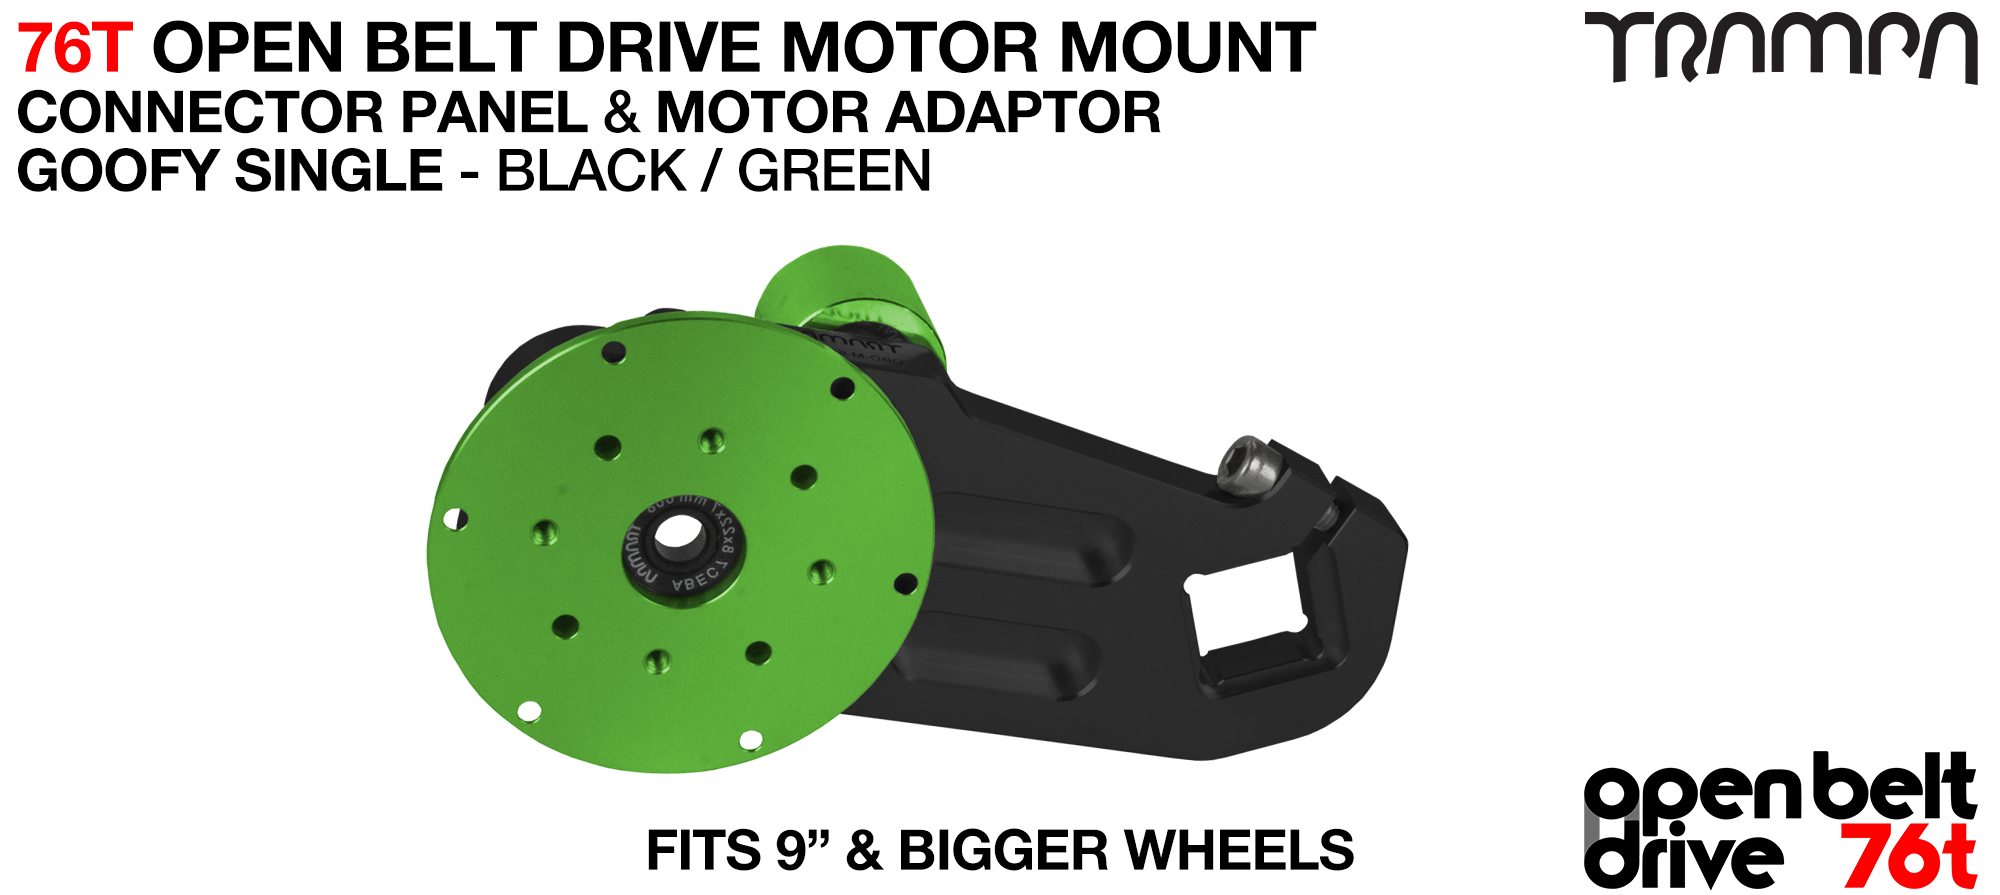 76T Open Belt Drive Motor Mount & Motor Adaptor - SINGLE GREEN